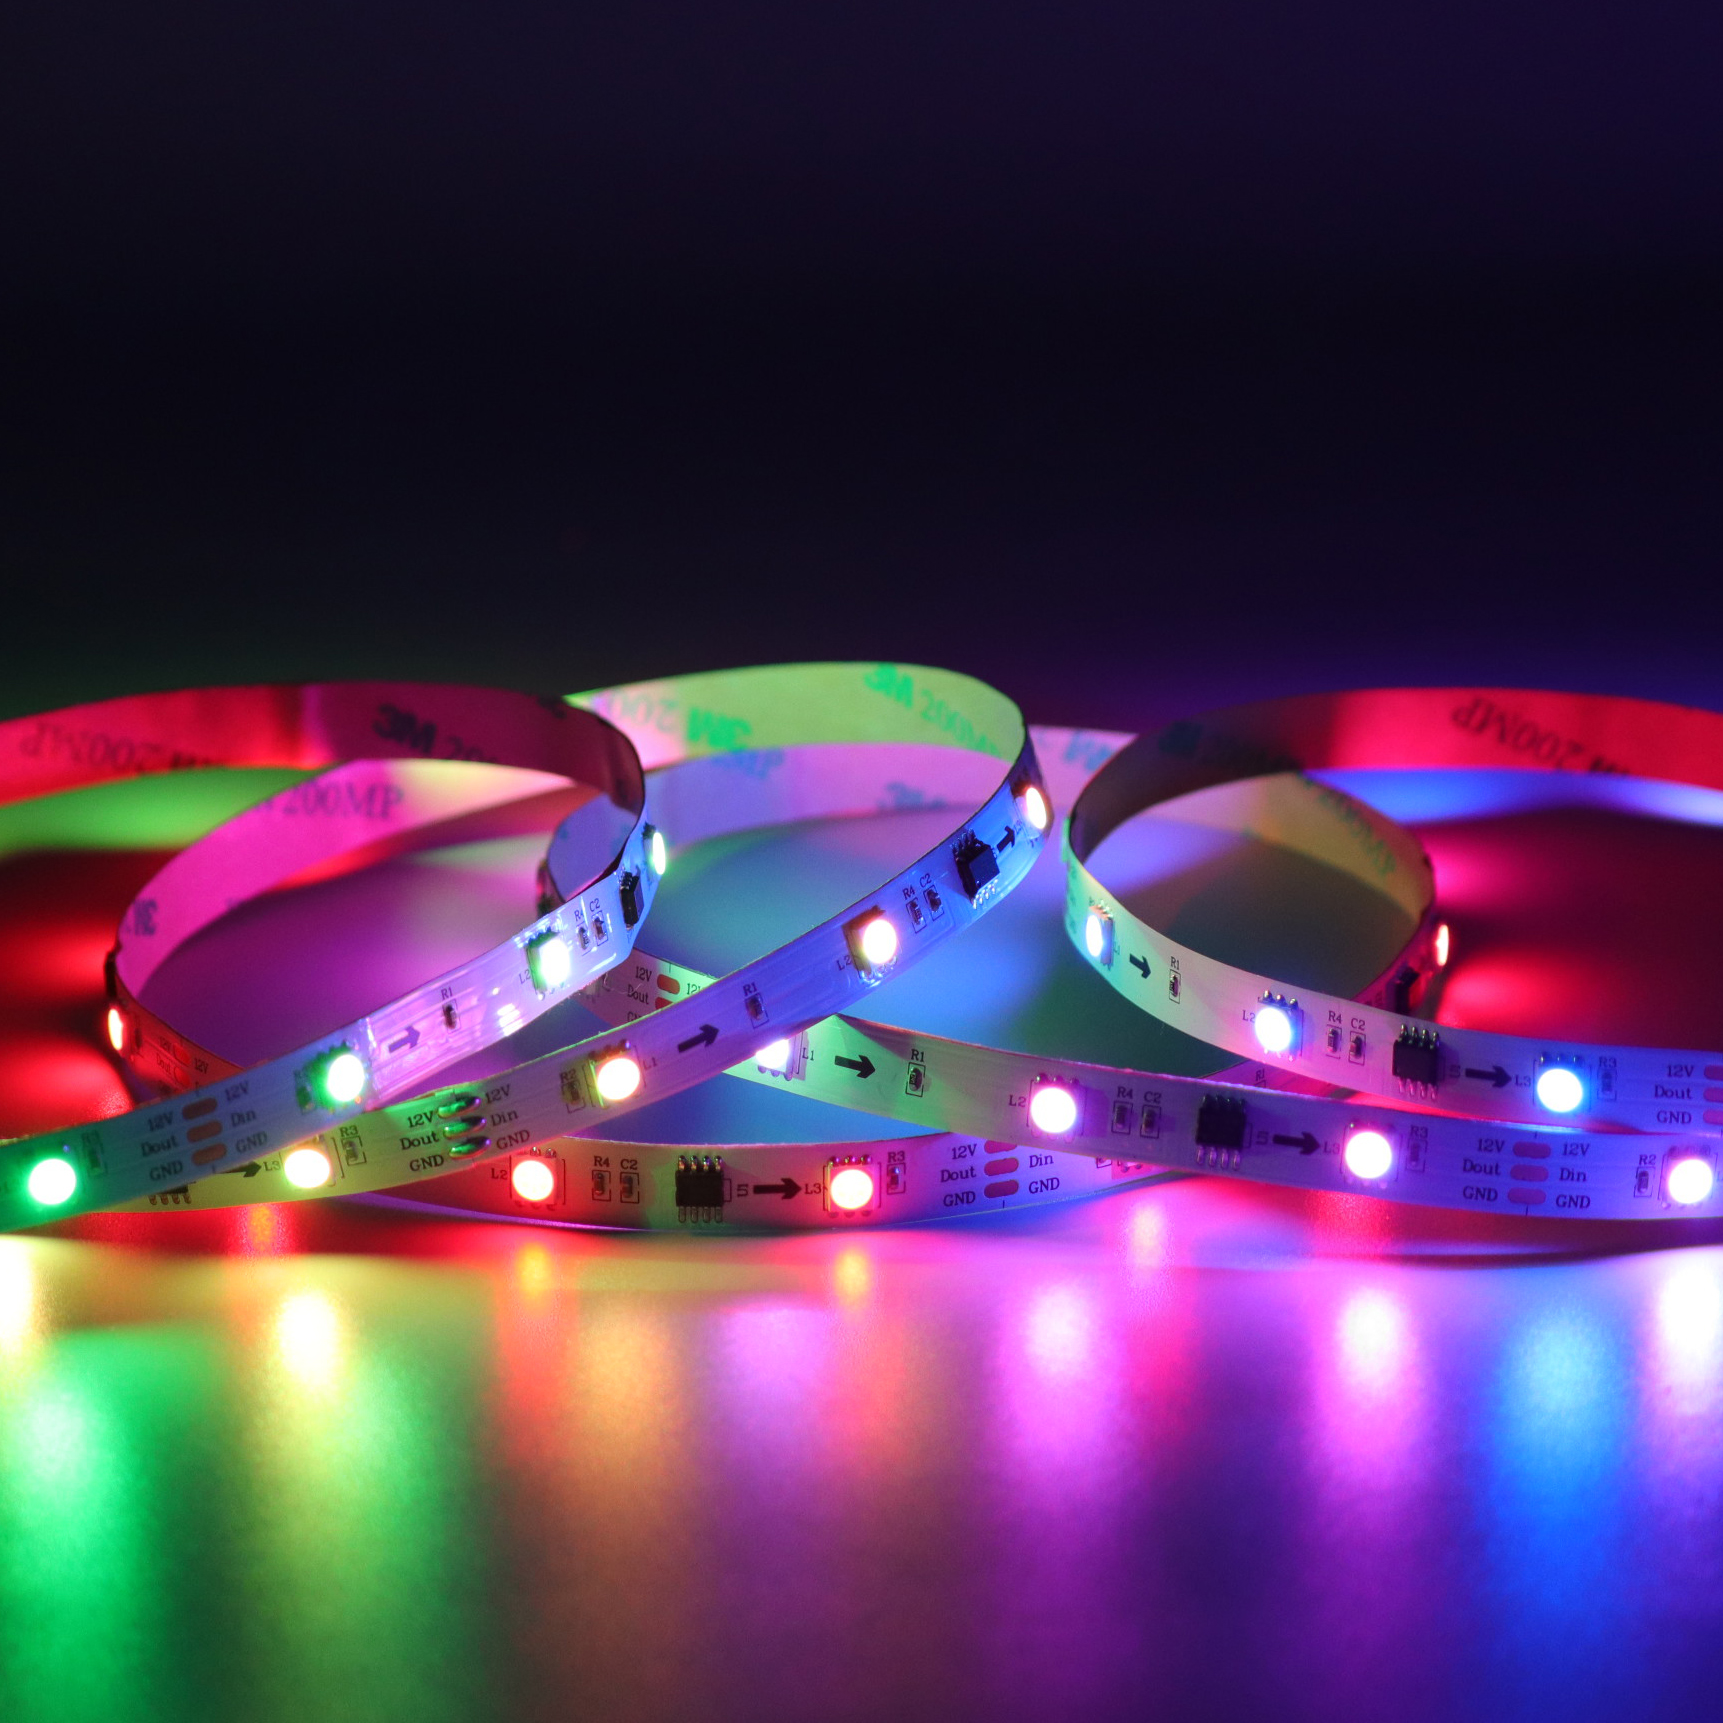 <font><b>led</b></font> ws2811 strip 30leds 10chips/m 5050RGB full color programmable DC12V ws2811 flexible cuttable stripe 10mm width program on <font><b>PC</b></font> image